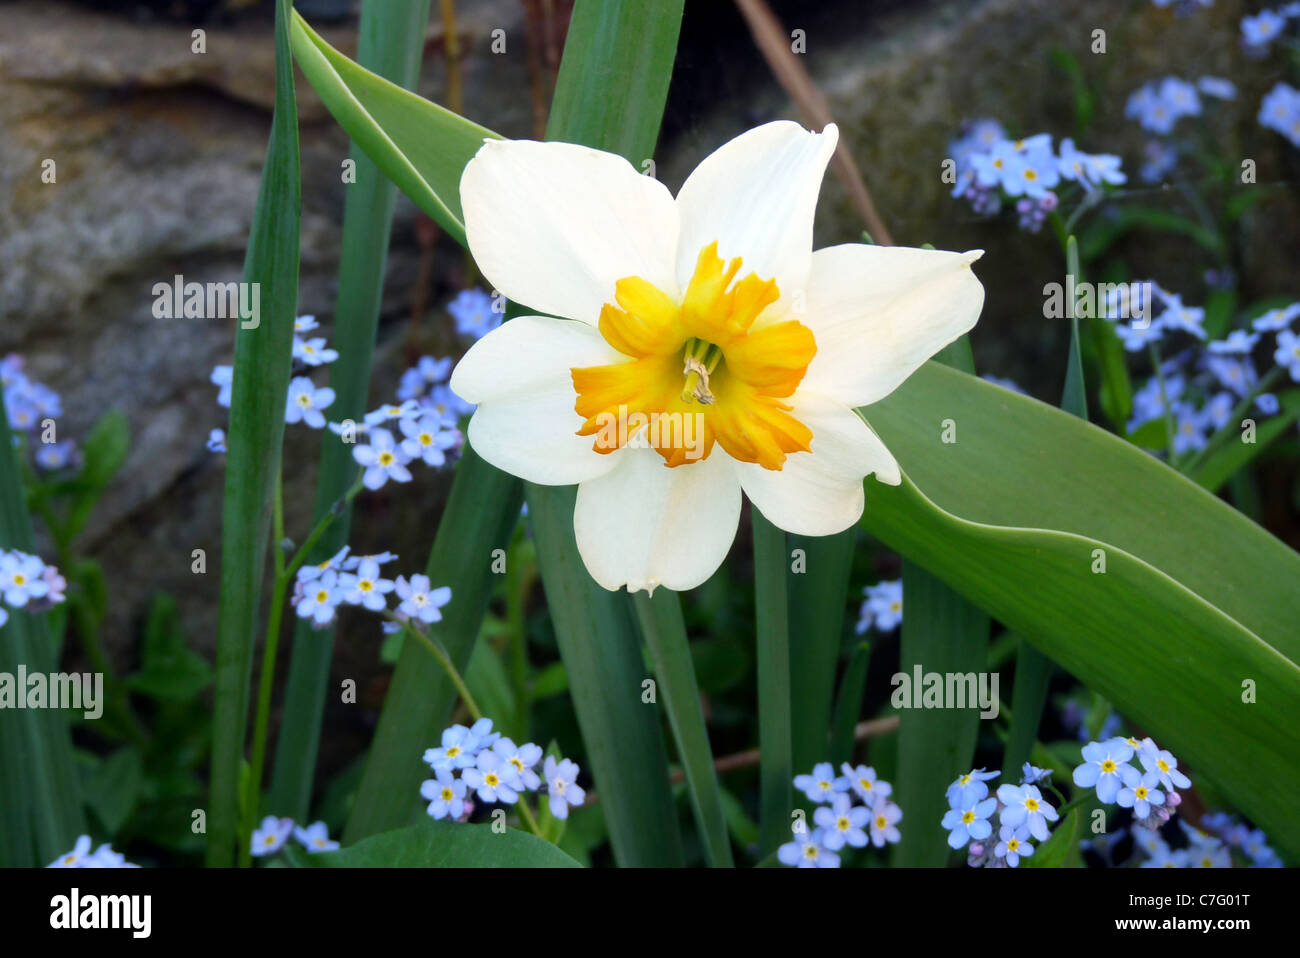 Spring flowers of daffodils and forget me nots blooming in garden spring flowers of daffodils and forget me nots blooming in garden near rock wall new england vermont dhlflorist Choice Image